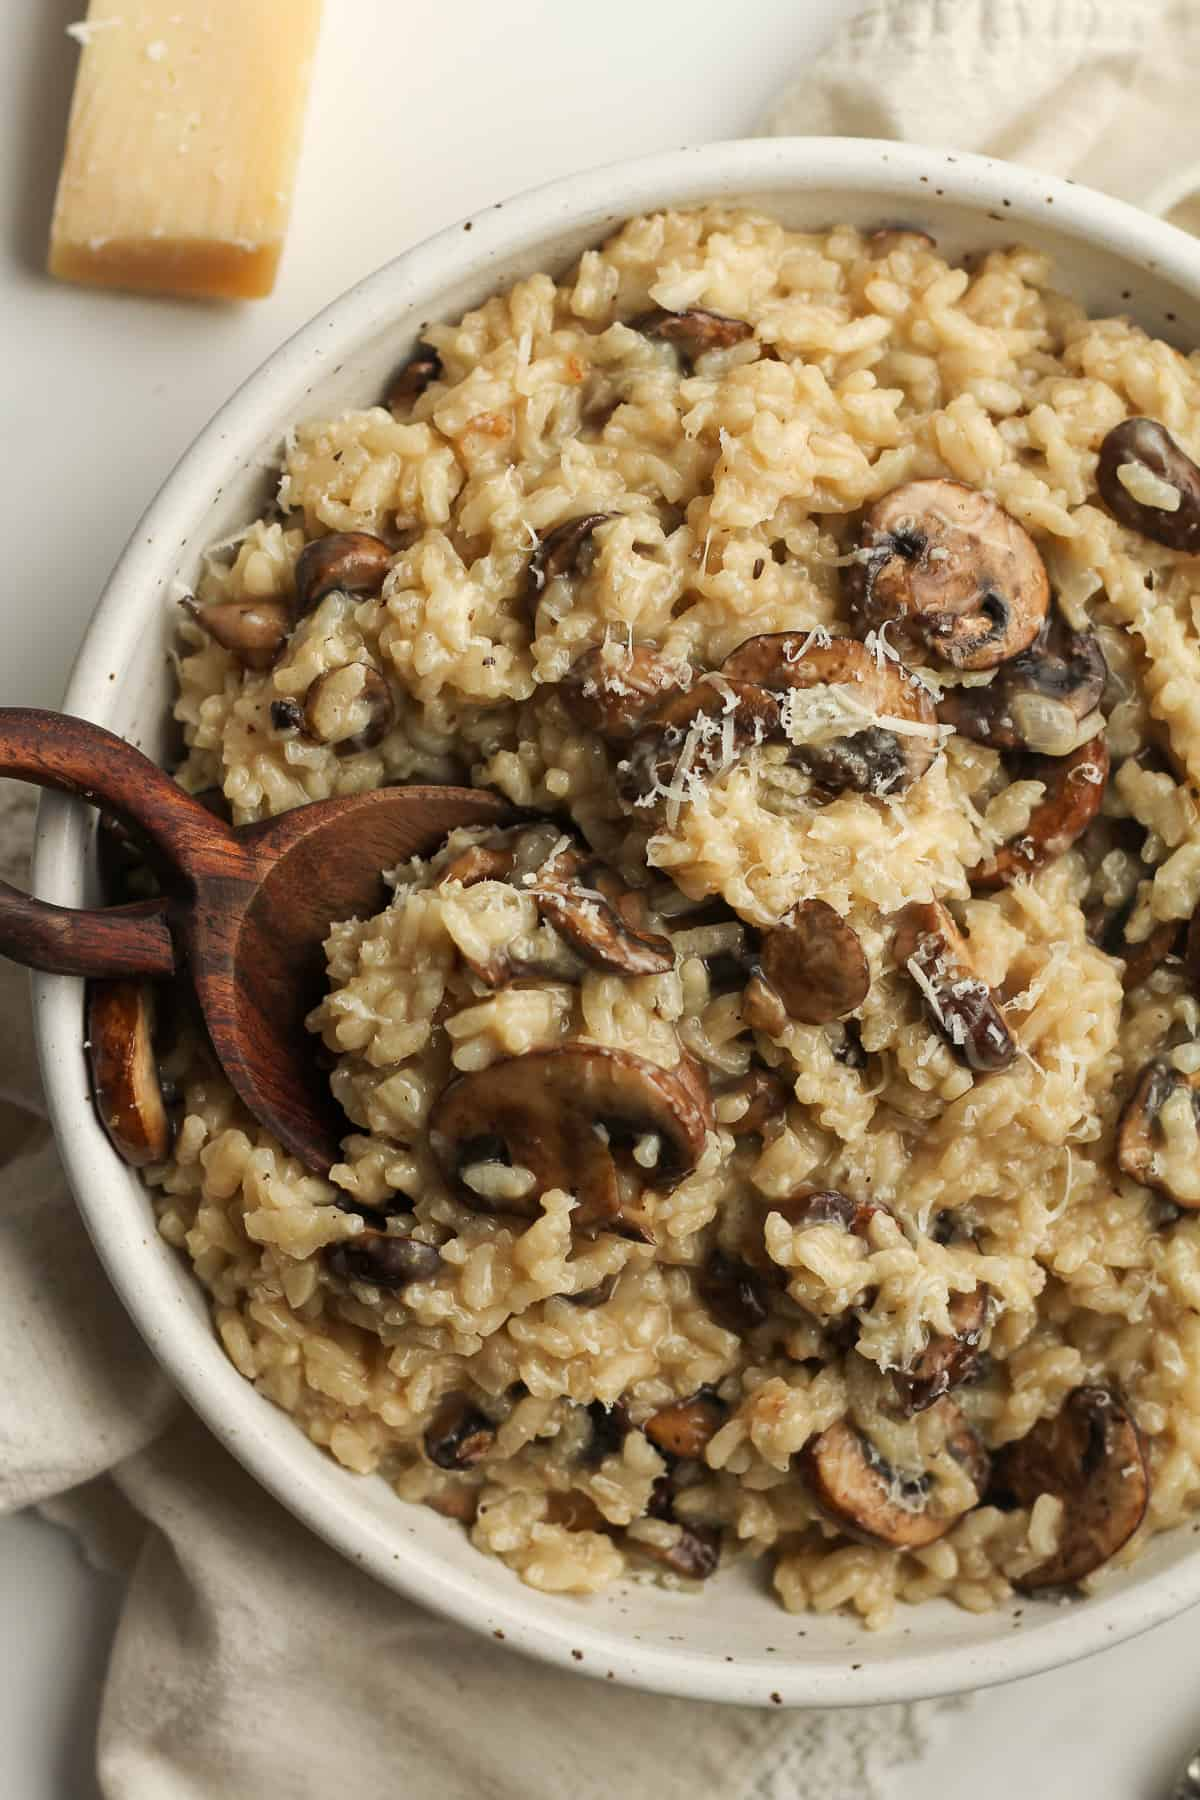 Overhead shot of a bowl of creamy mushroom risotto, with a wooden spoon.